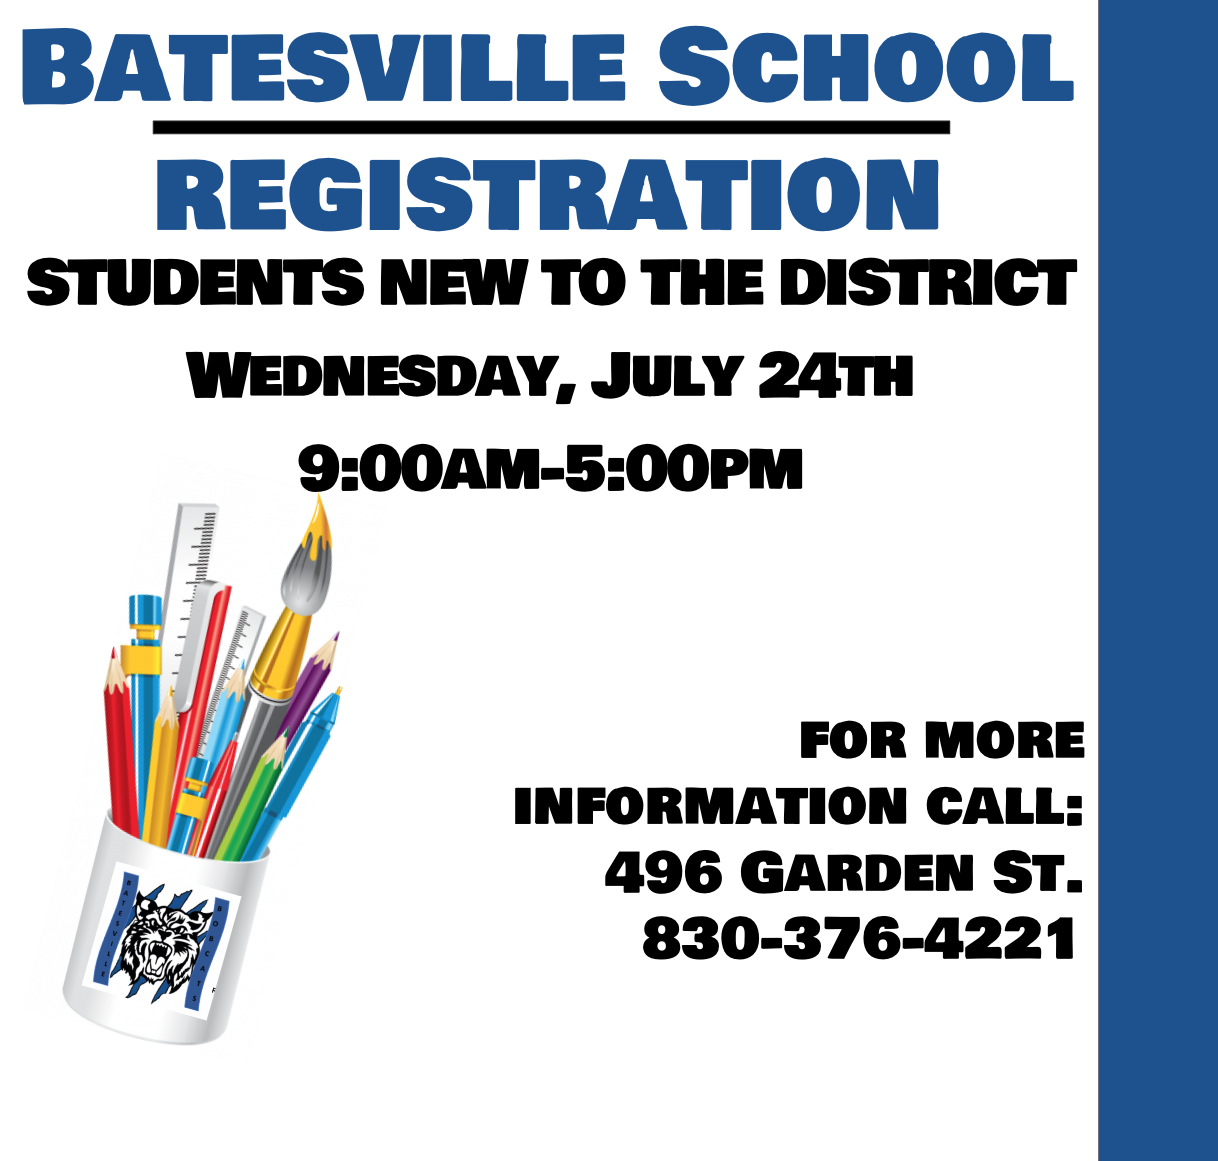 Batesville School Registration for Students New to the District!